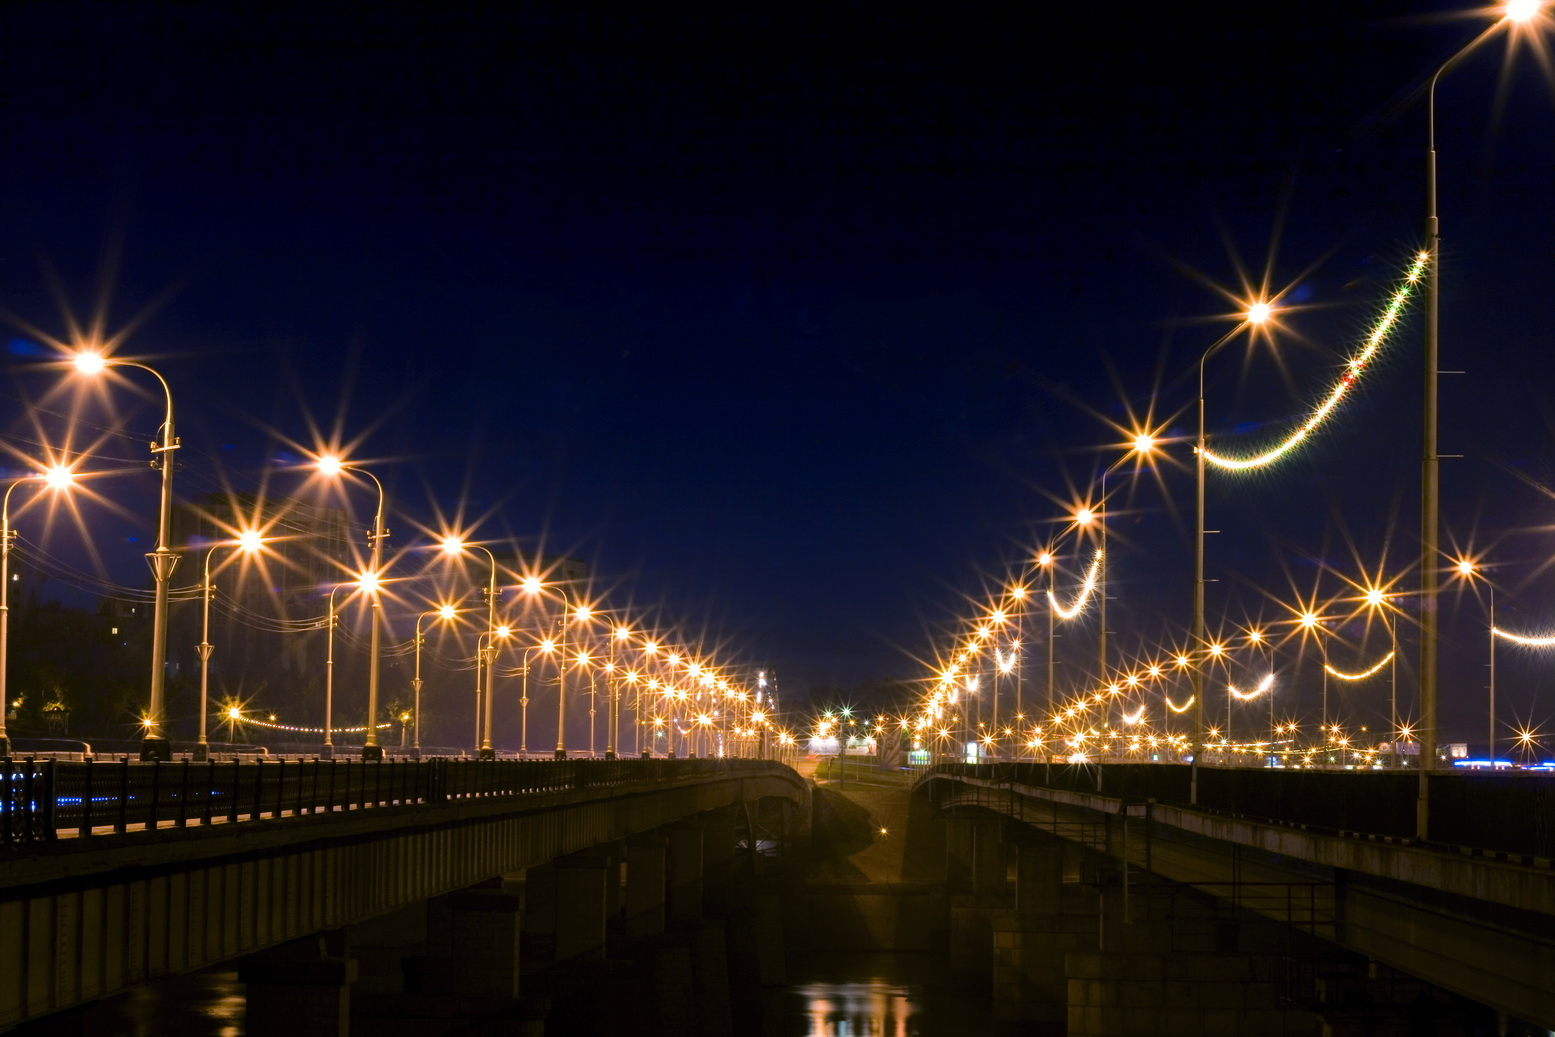 Free photo: Night city - Abstract, Streetlights, Road ...